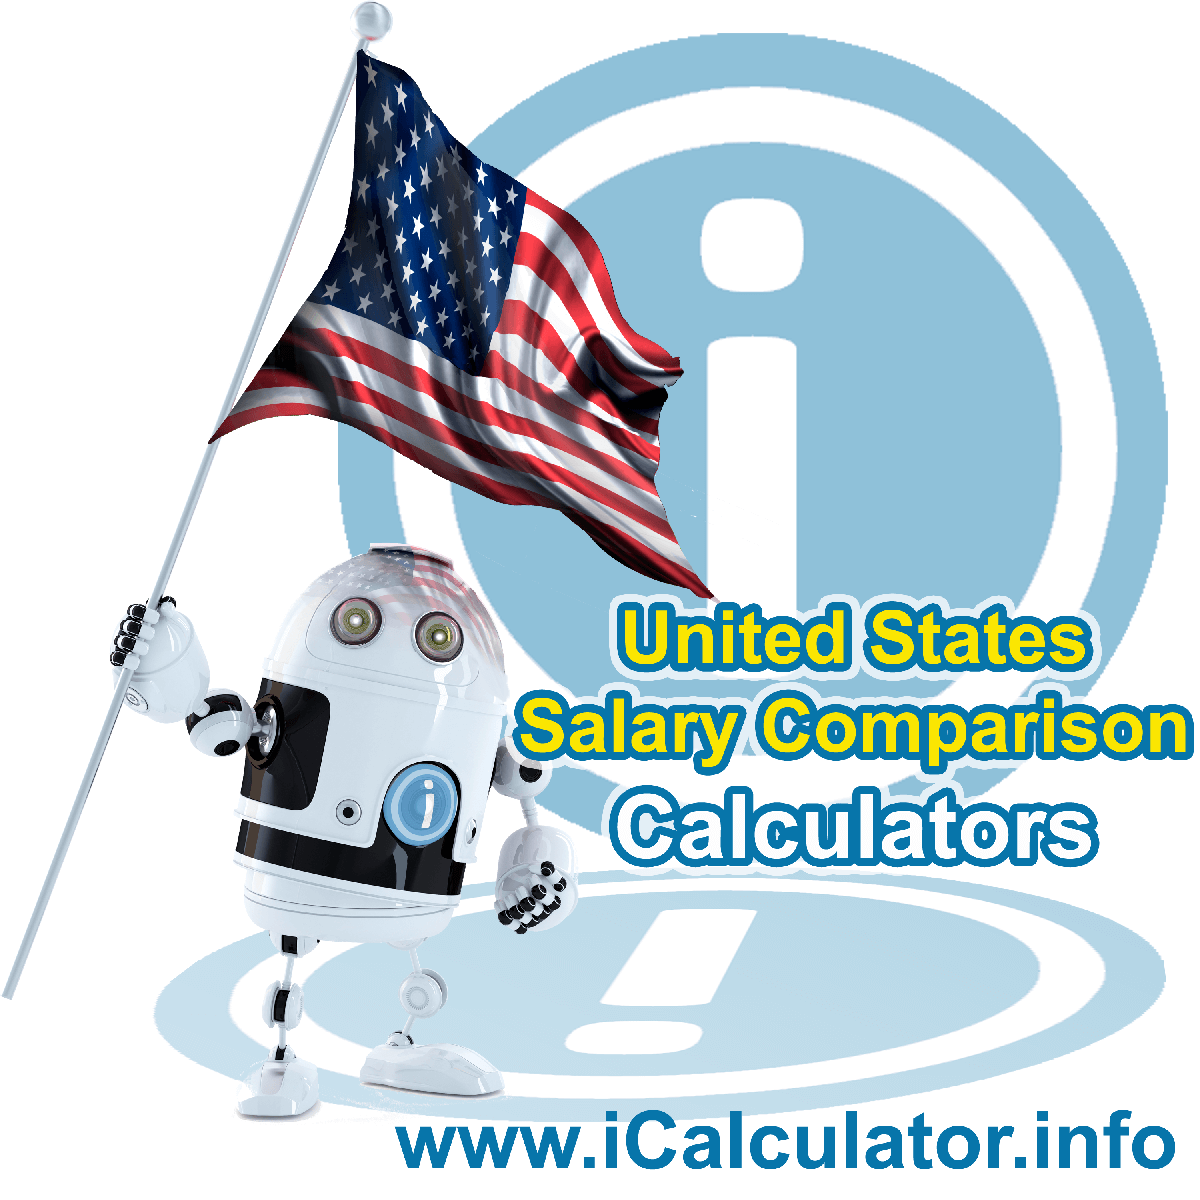 United States Salary Comparison Calculator 2020 | iCalculator | The United States Salary Comparison Calculator allows you to quickly compare several salaries adjacent each other to see the best salary after tax including Federal State Tax, Medicare Deductions, Social Security, Capital Gains and other income tax and salary deductions complete with supporting income tax tables